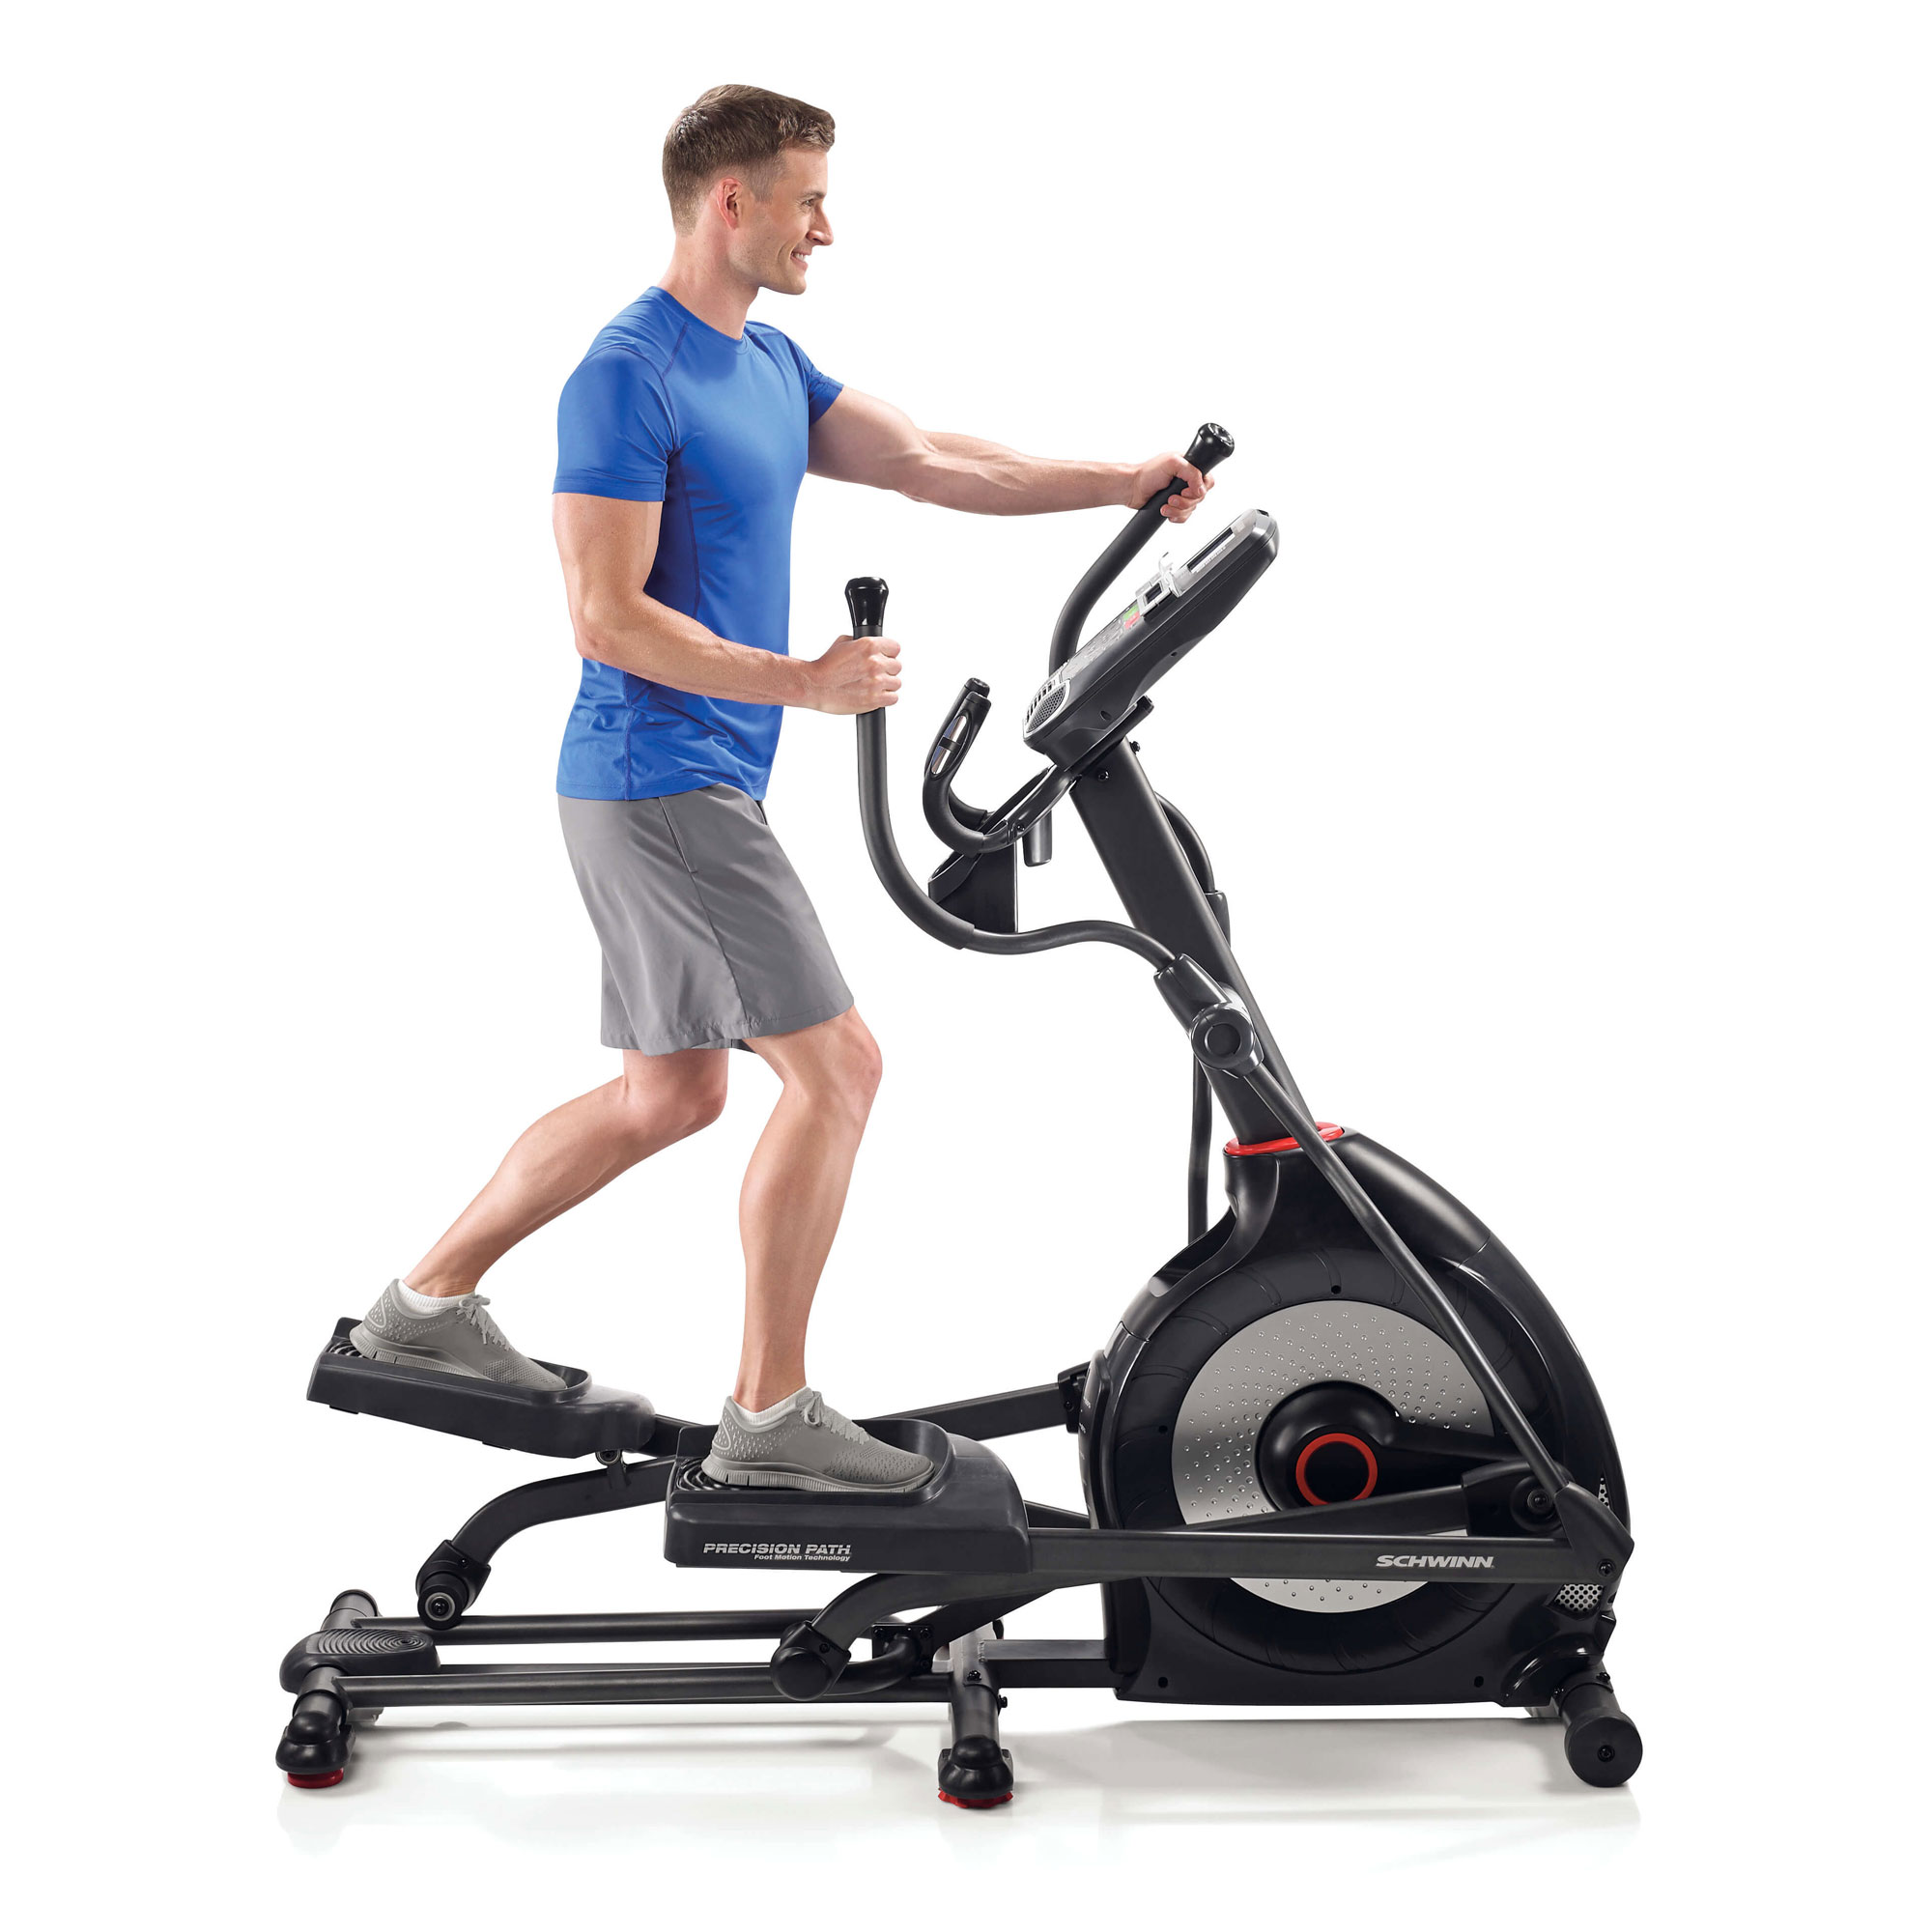 3ccc8474f72 Schwinn Fitness 470 Home Workout Stationary Elliptical Trainer Exercise  Machine